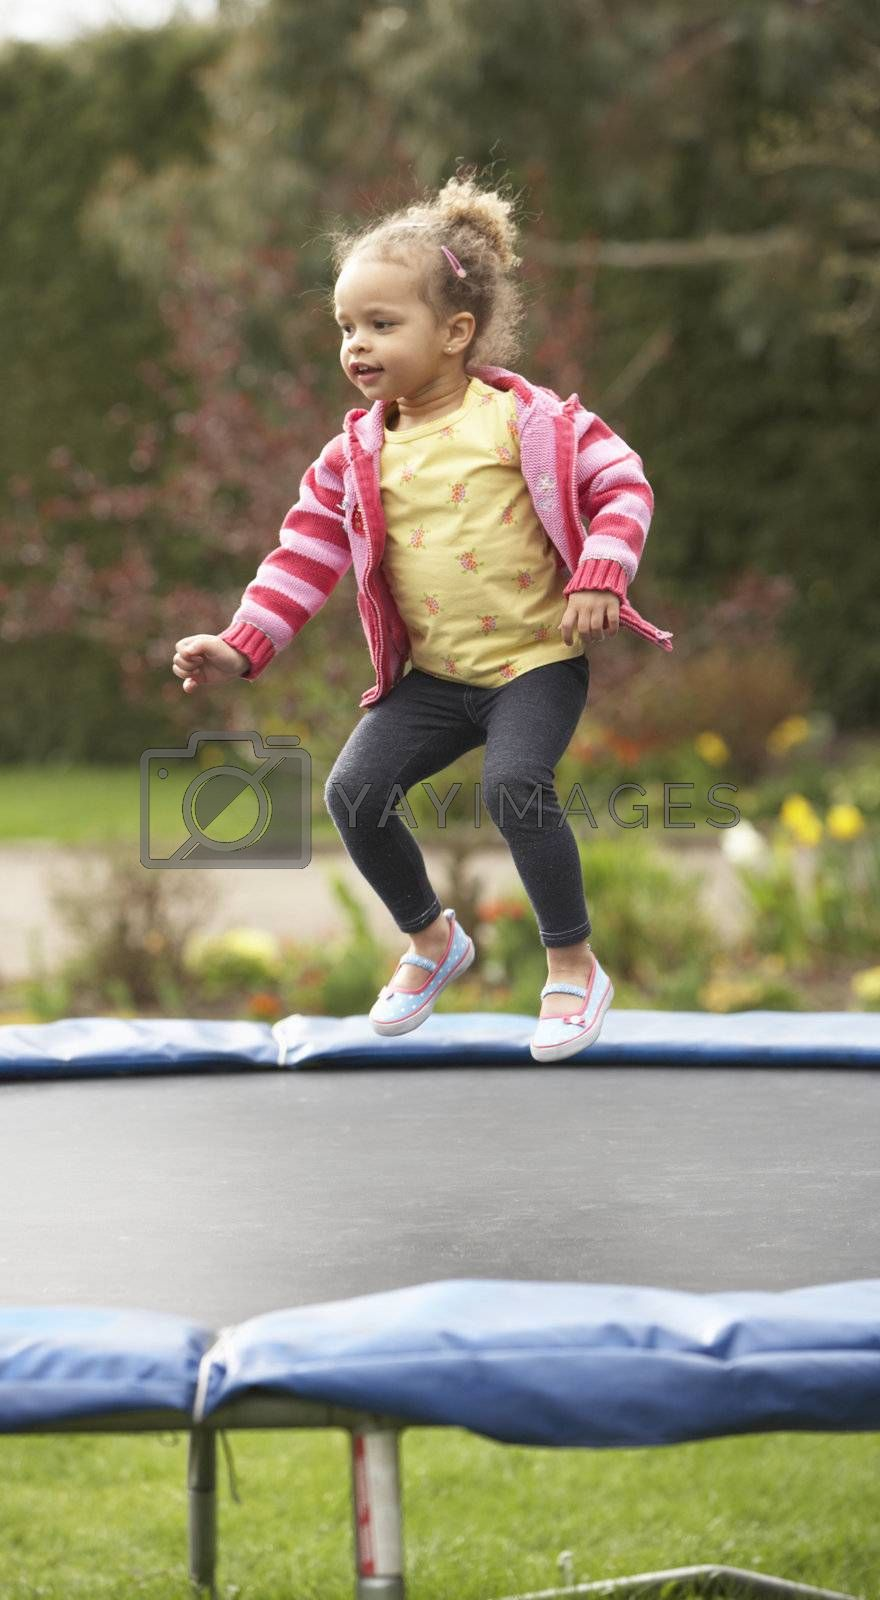 Royalty free image of Girl Playing On Trampoline by omg_images